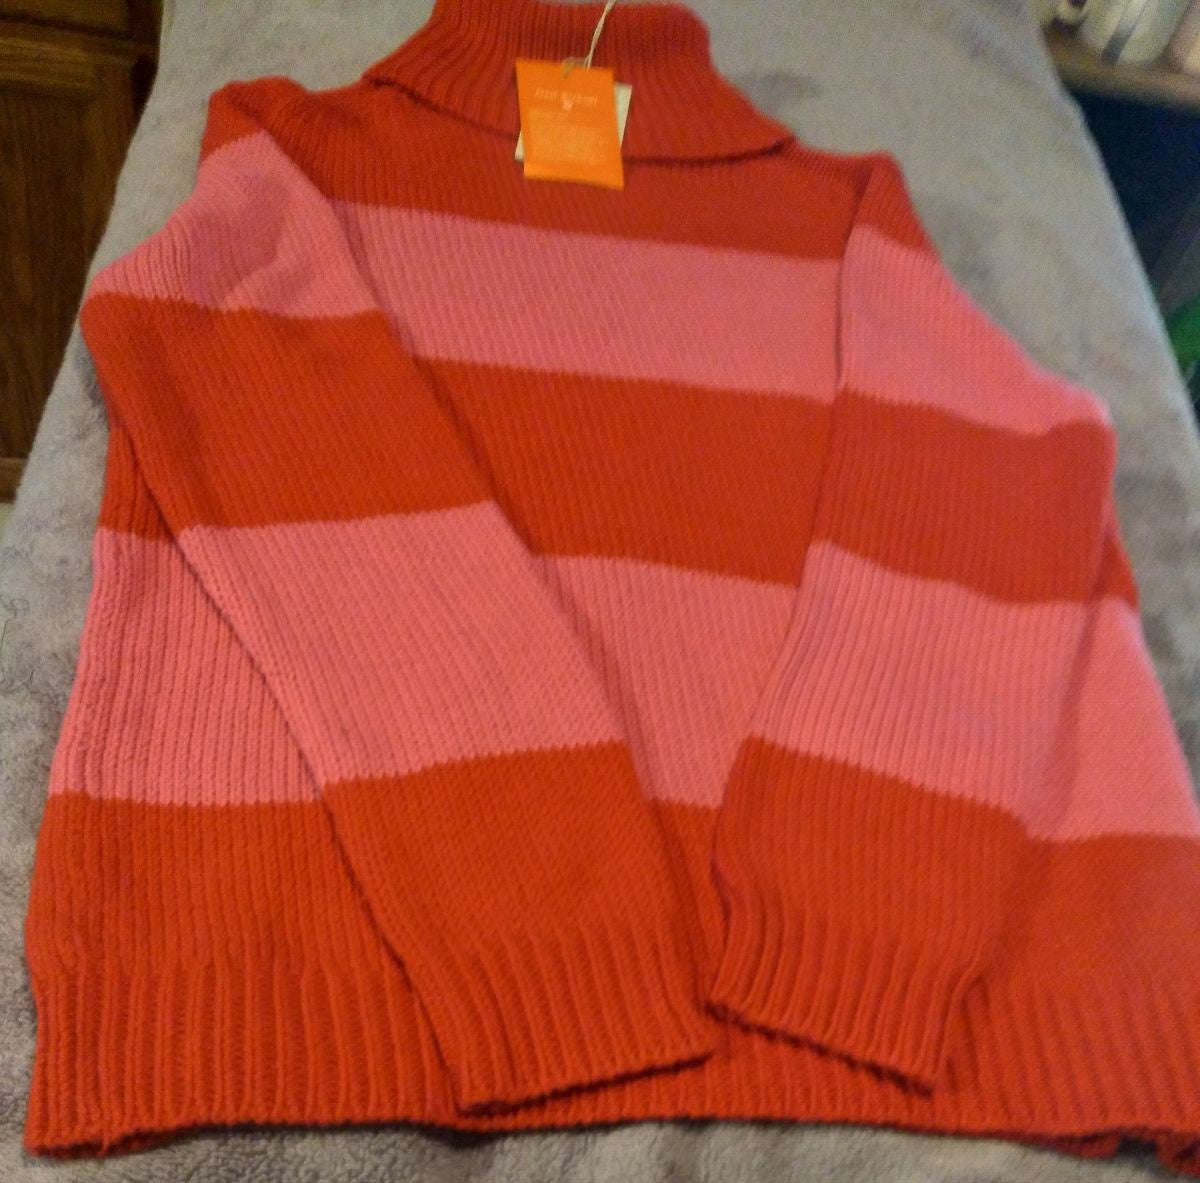 Pink and red woven sweater